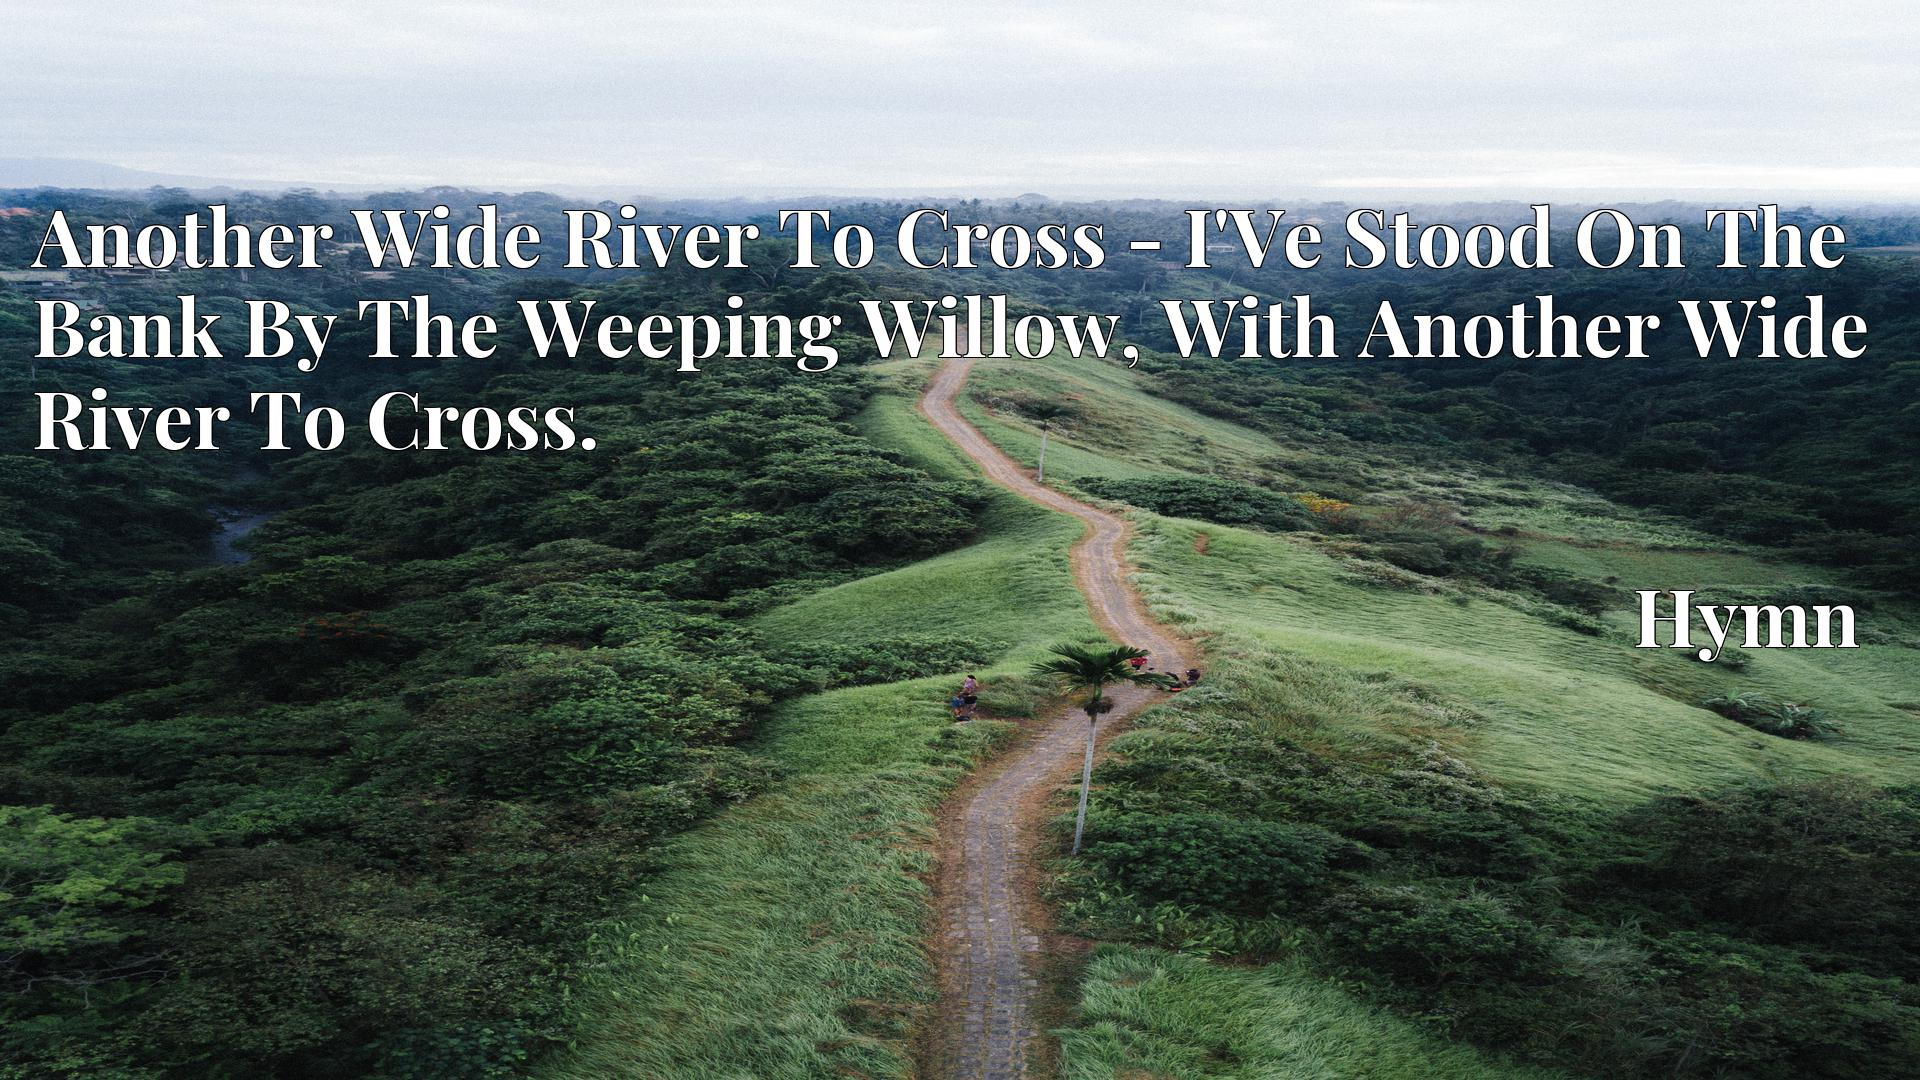 Another Wide River To Cross - I'Ve Stood On The Bank By The Weeping Willow, With Another Wide River To Cross. - Hymn